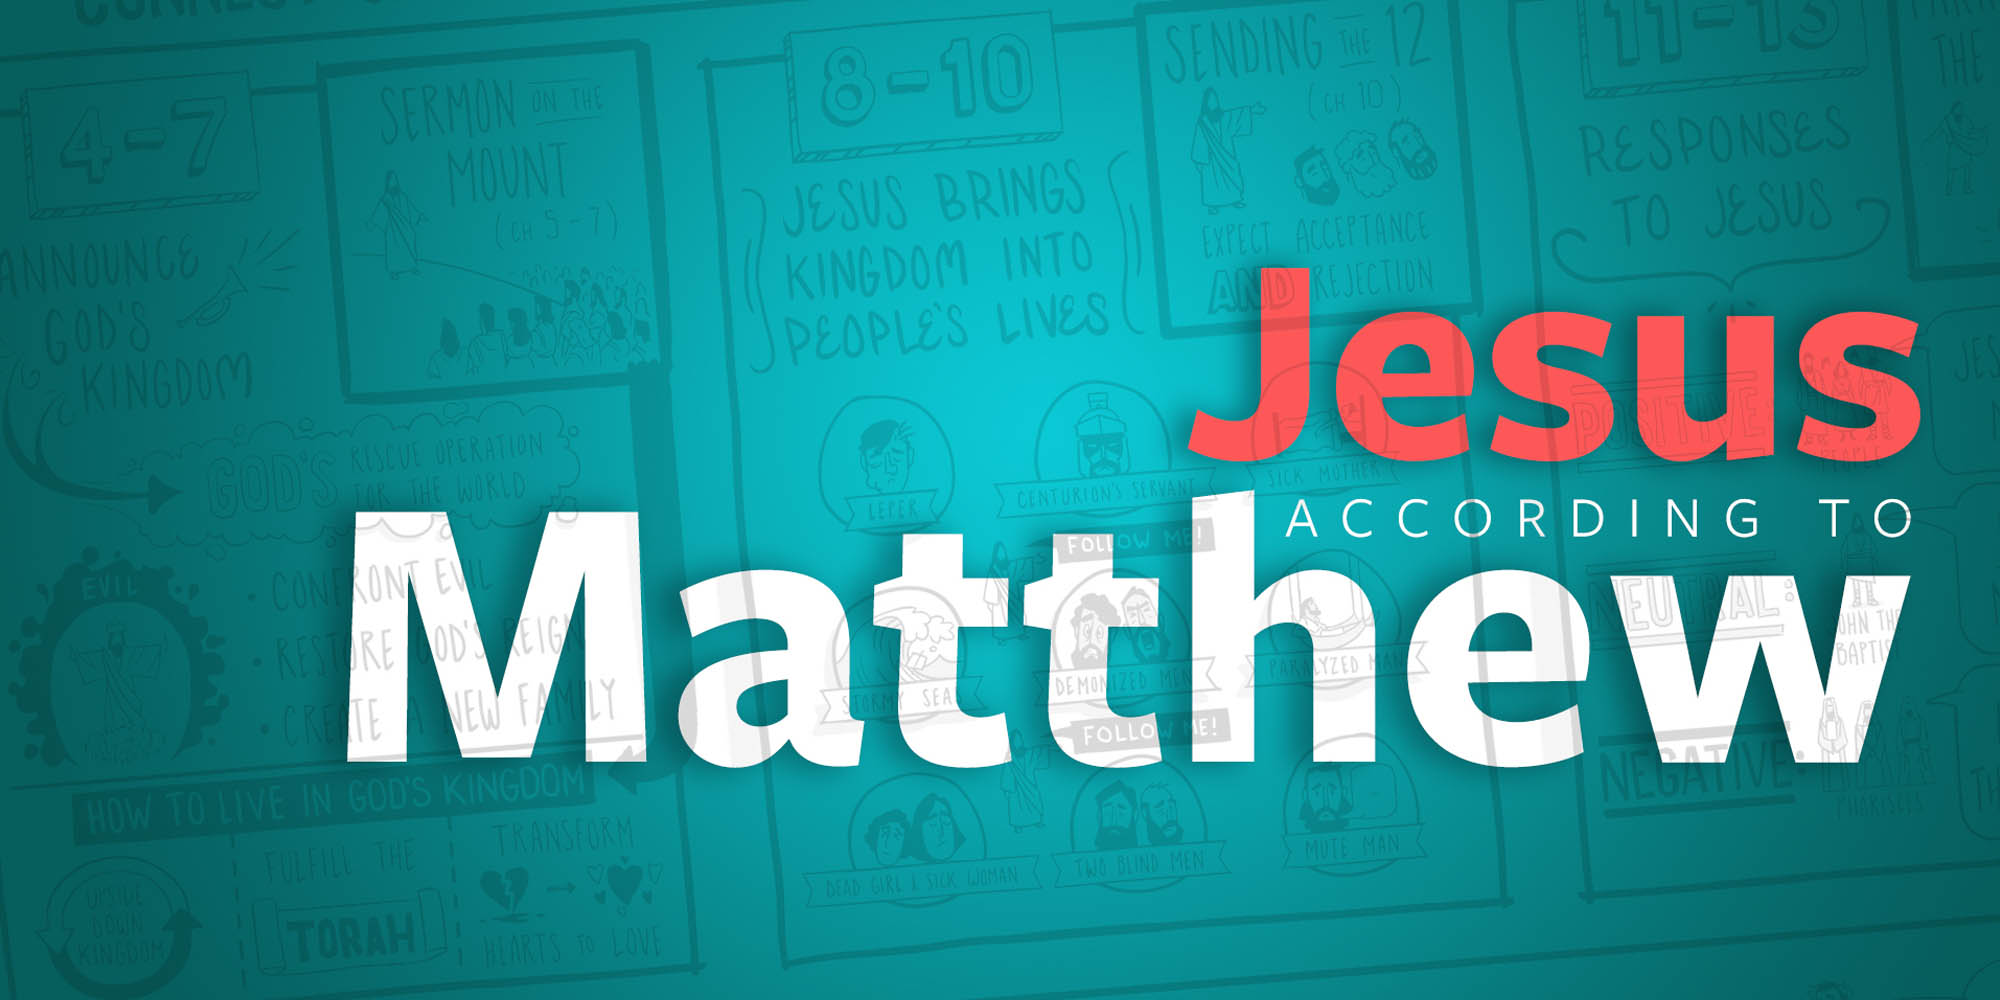 Jesus According to Matthew - Web Landing Page (2000x1000)